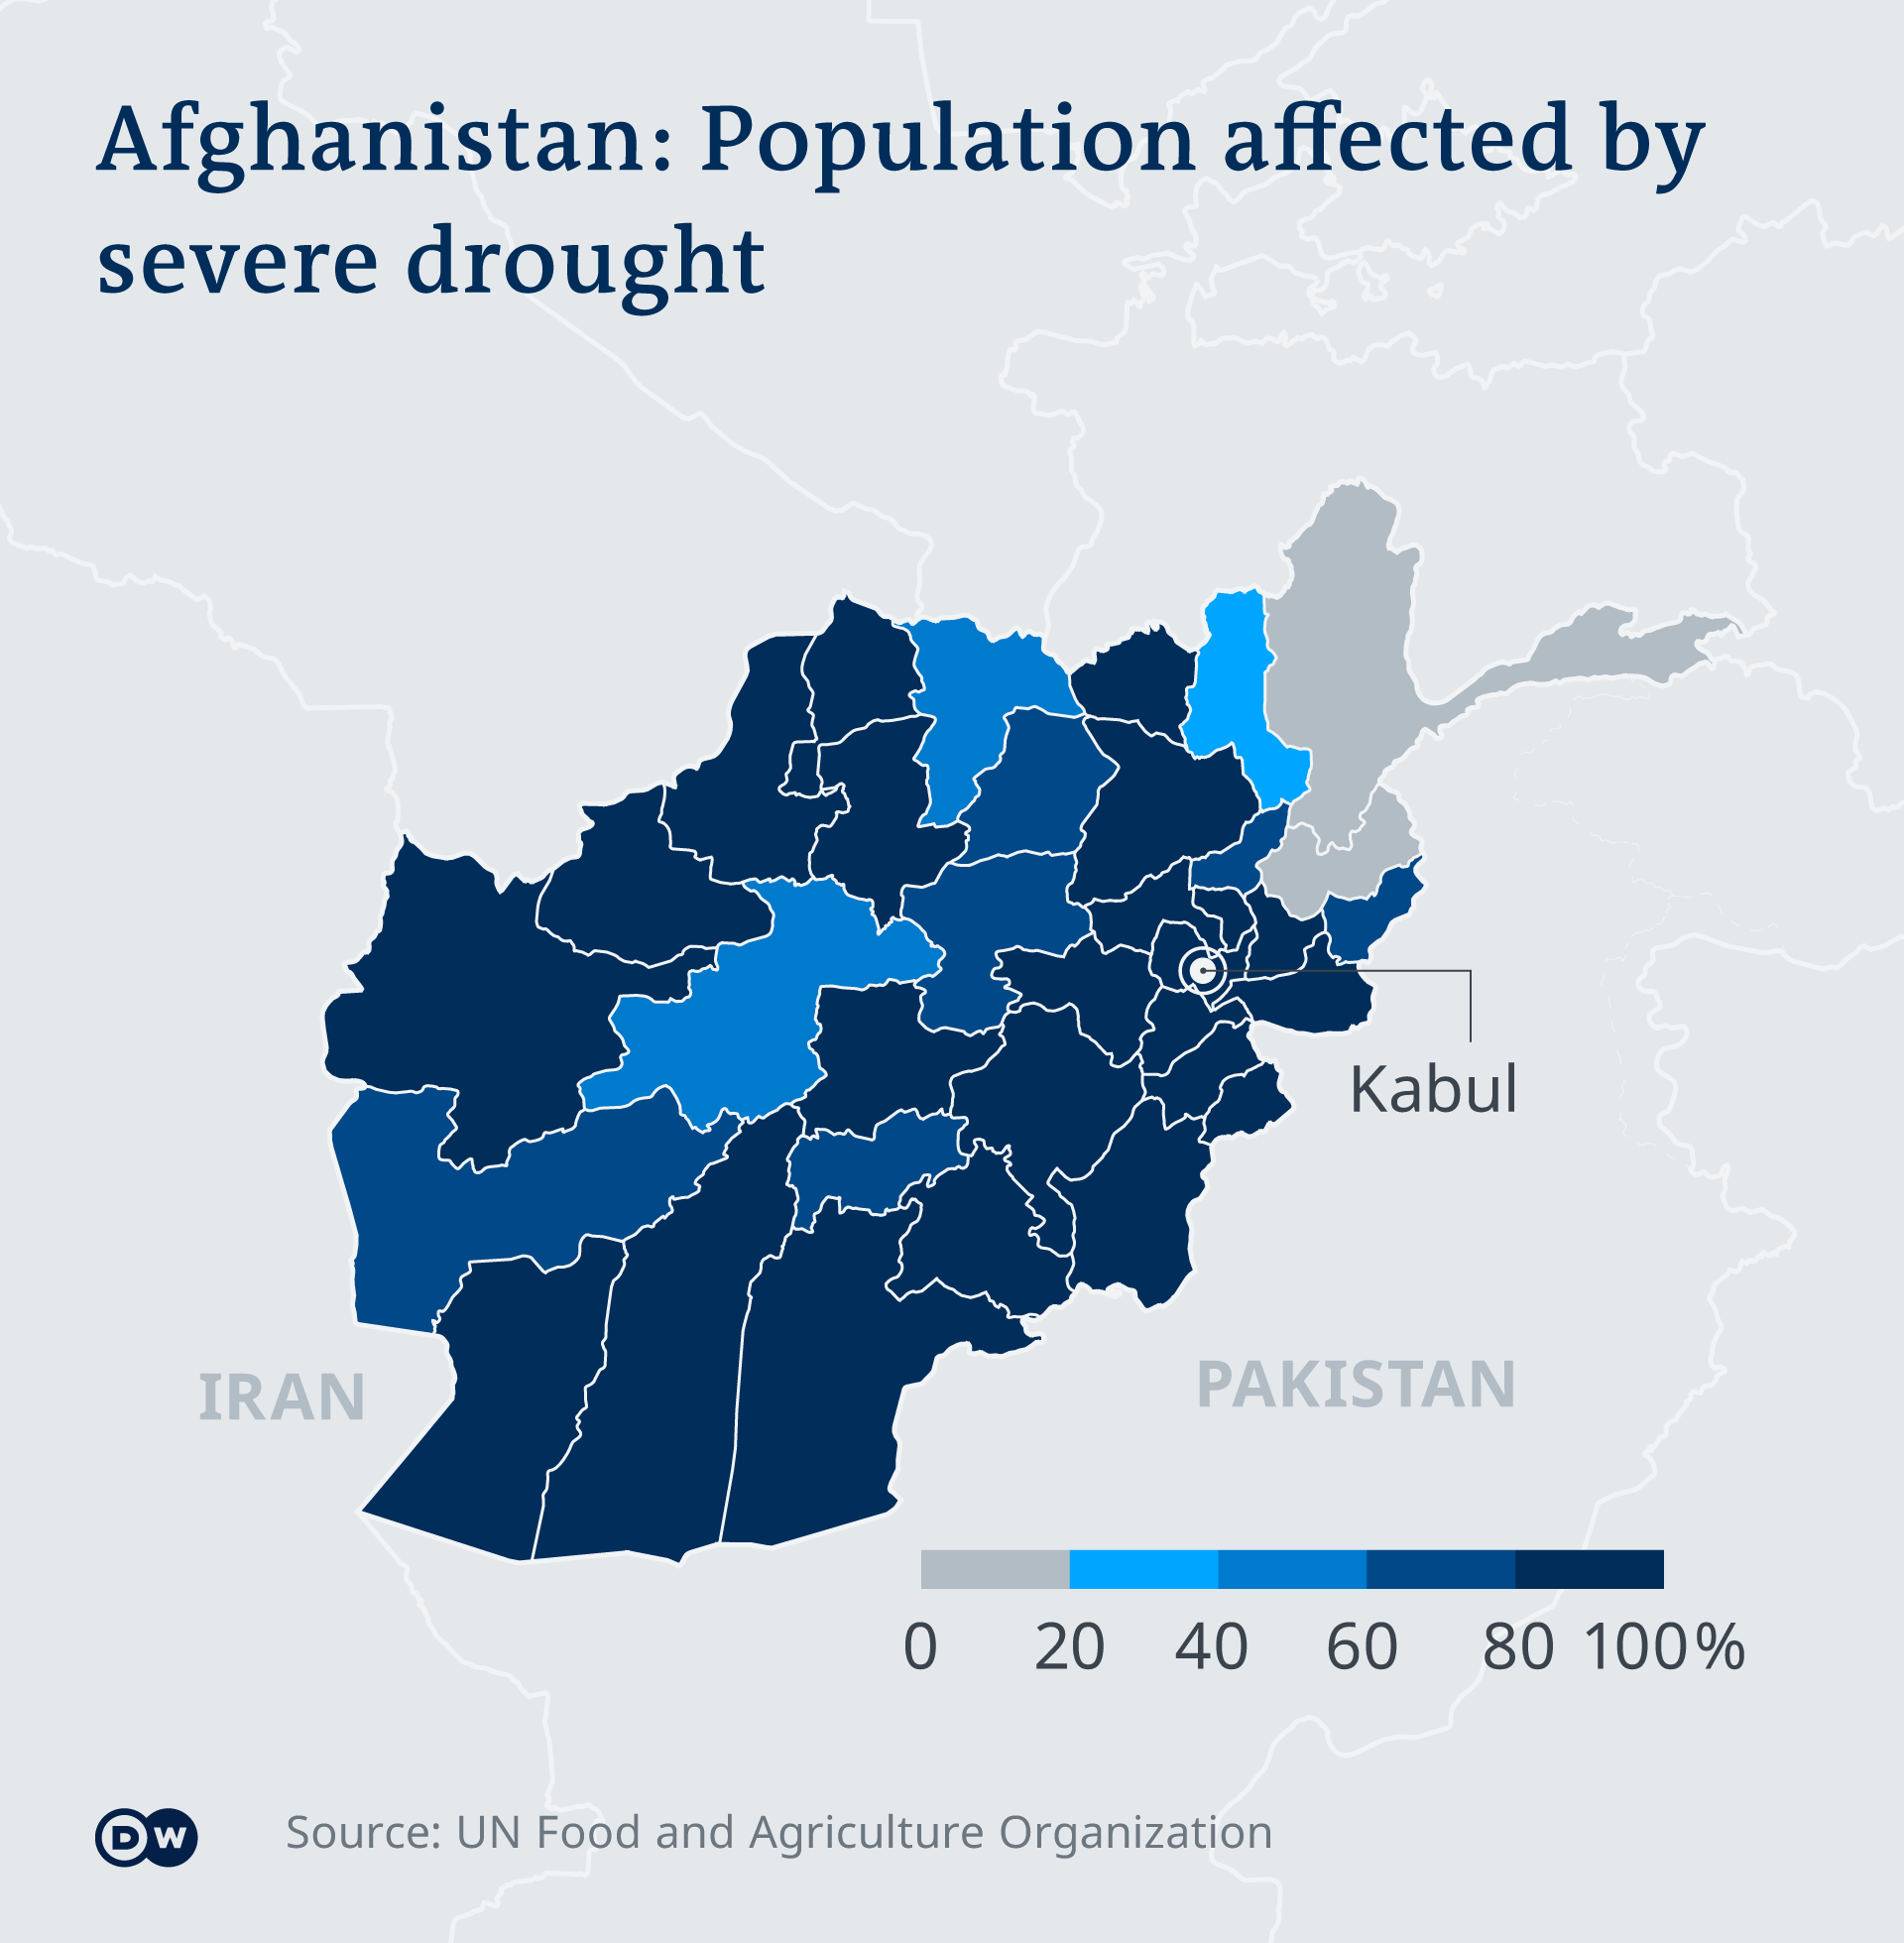 An infographic showing population affected by severe drought